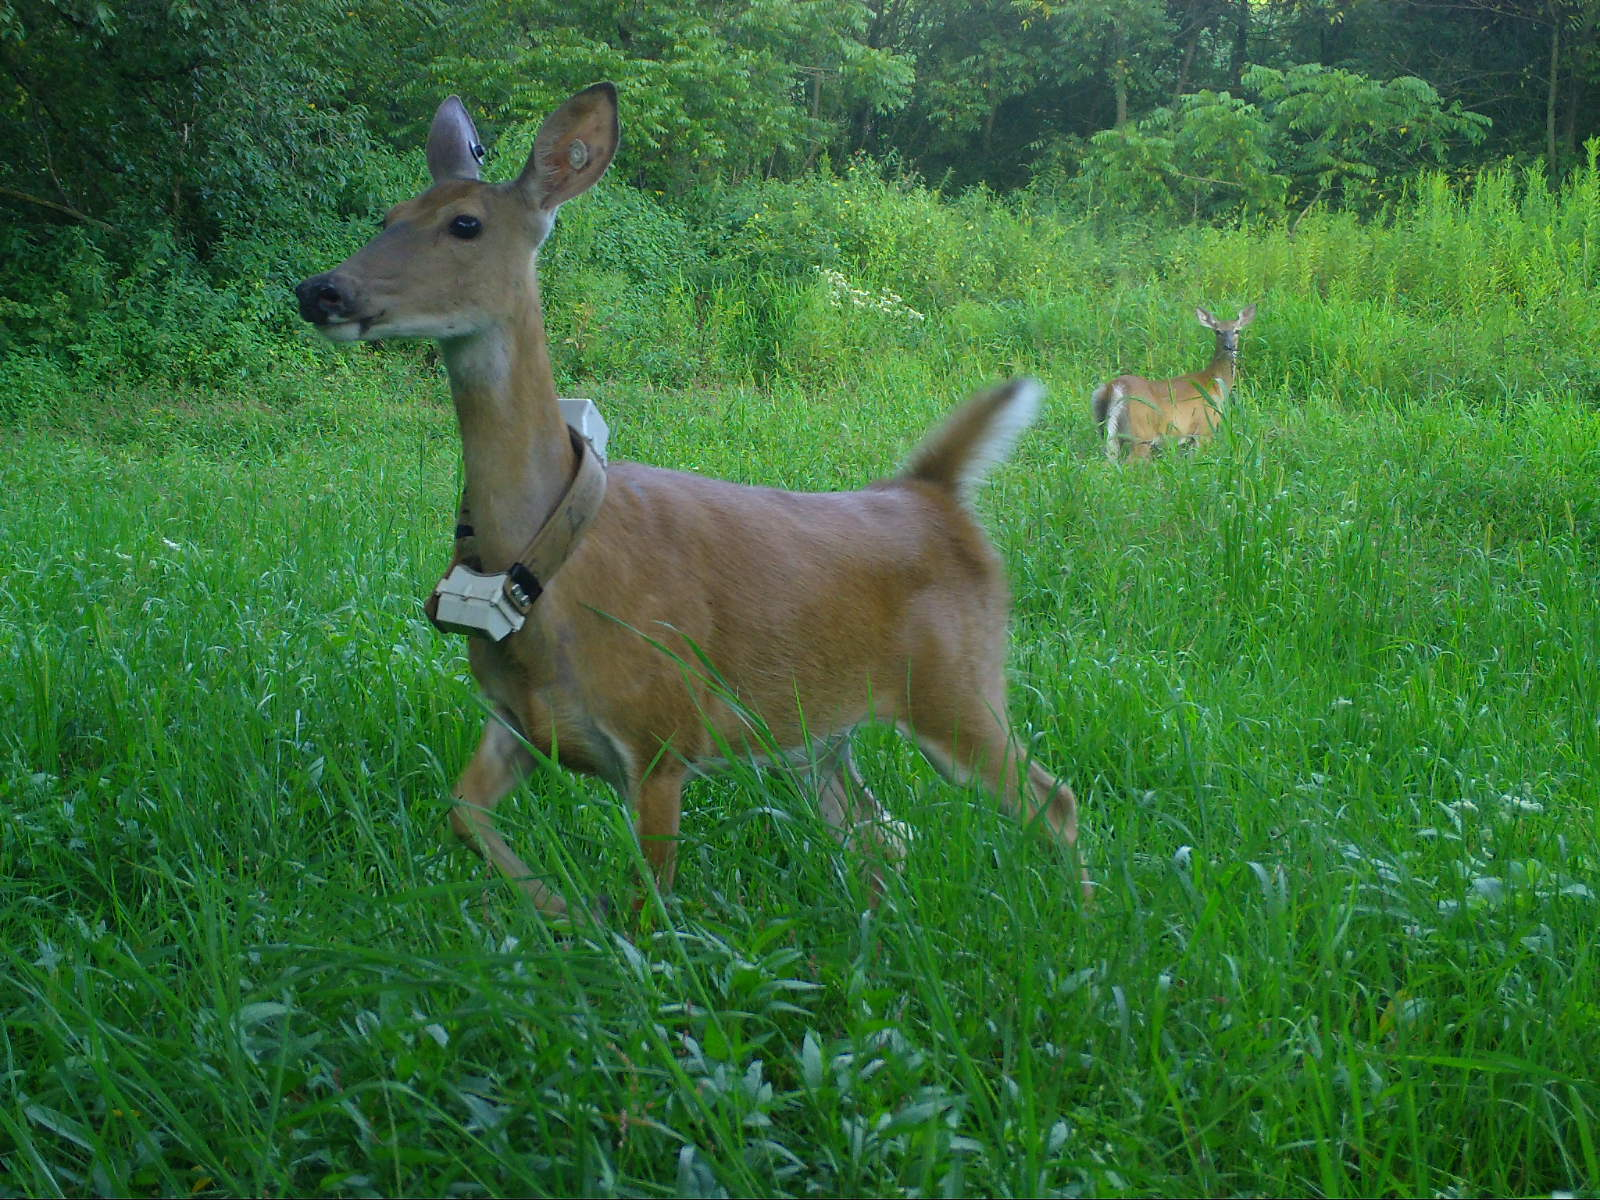 A deer with a radio collar around its neck.